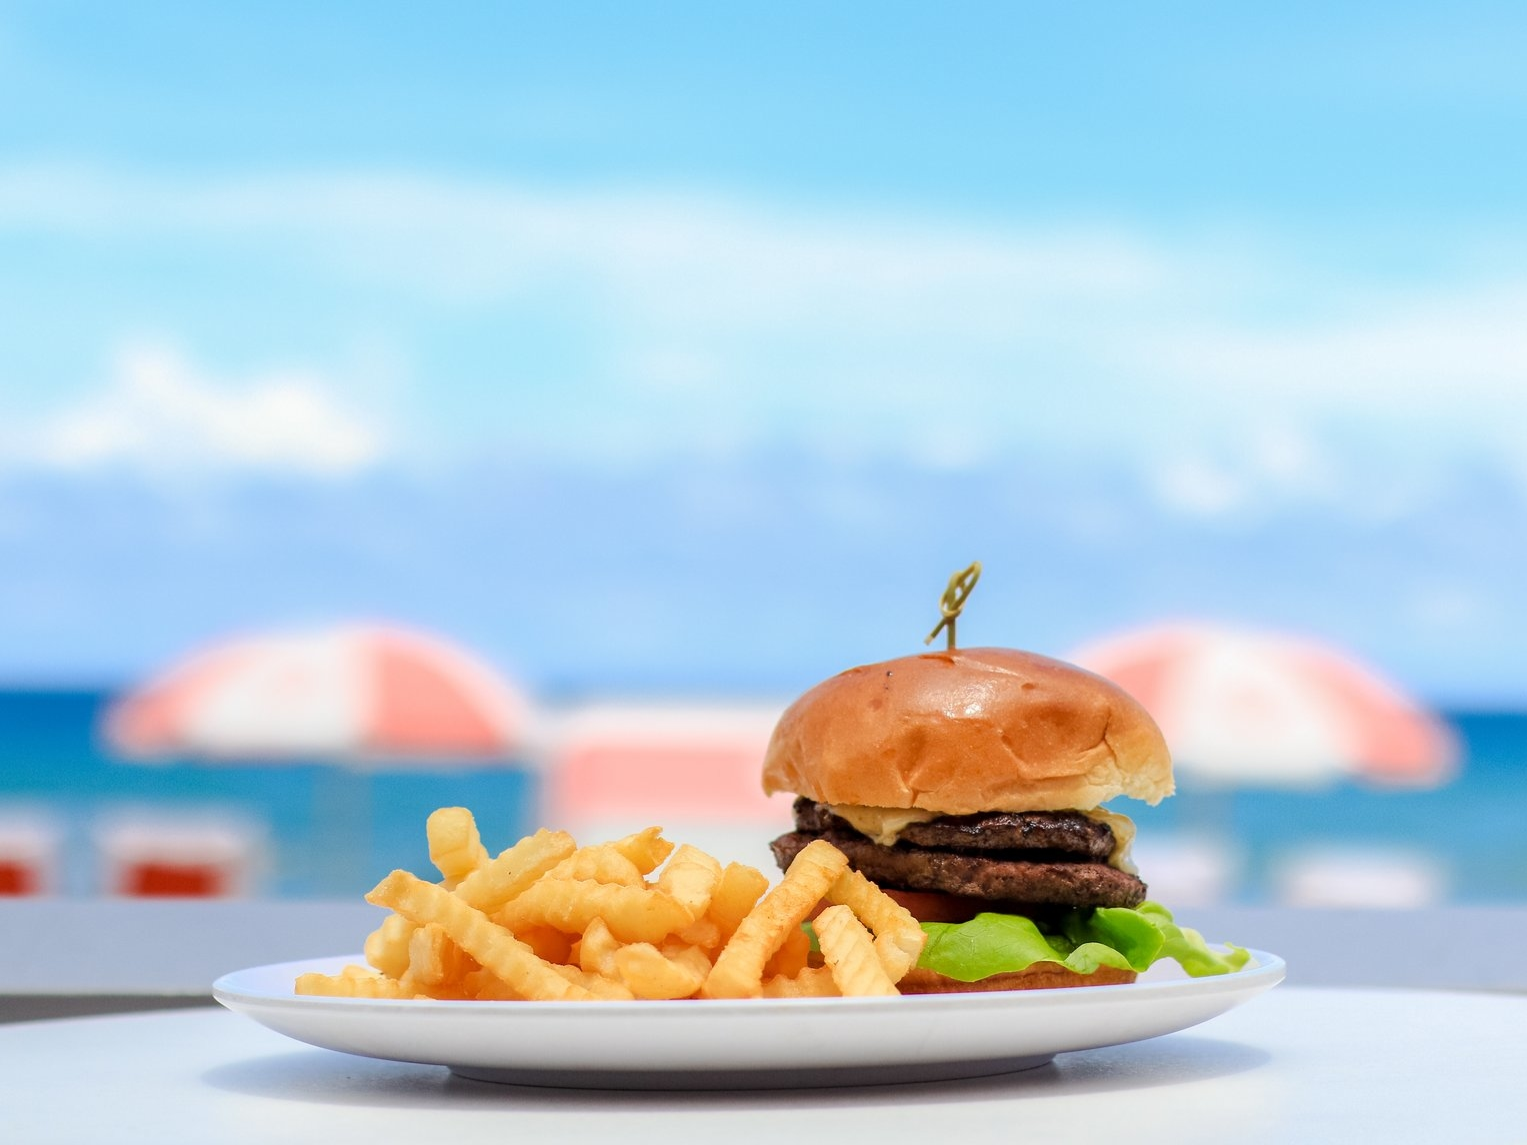 Burger by the beach